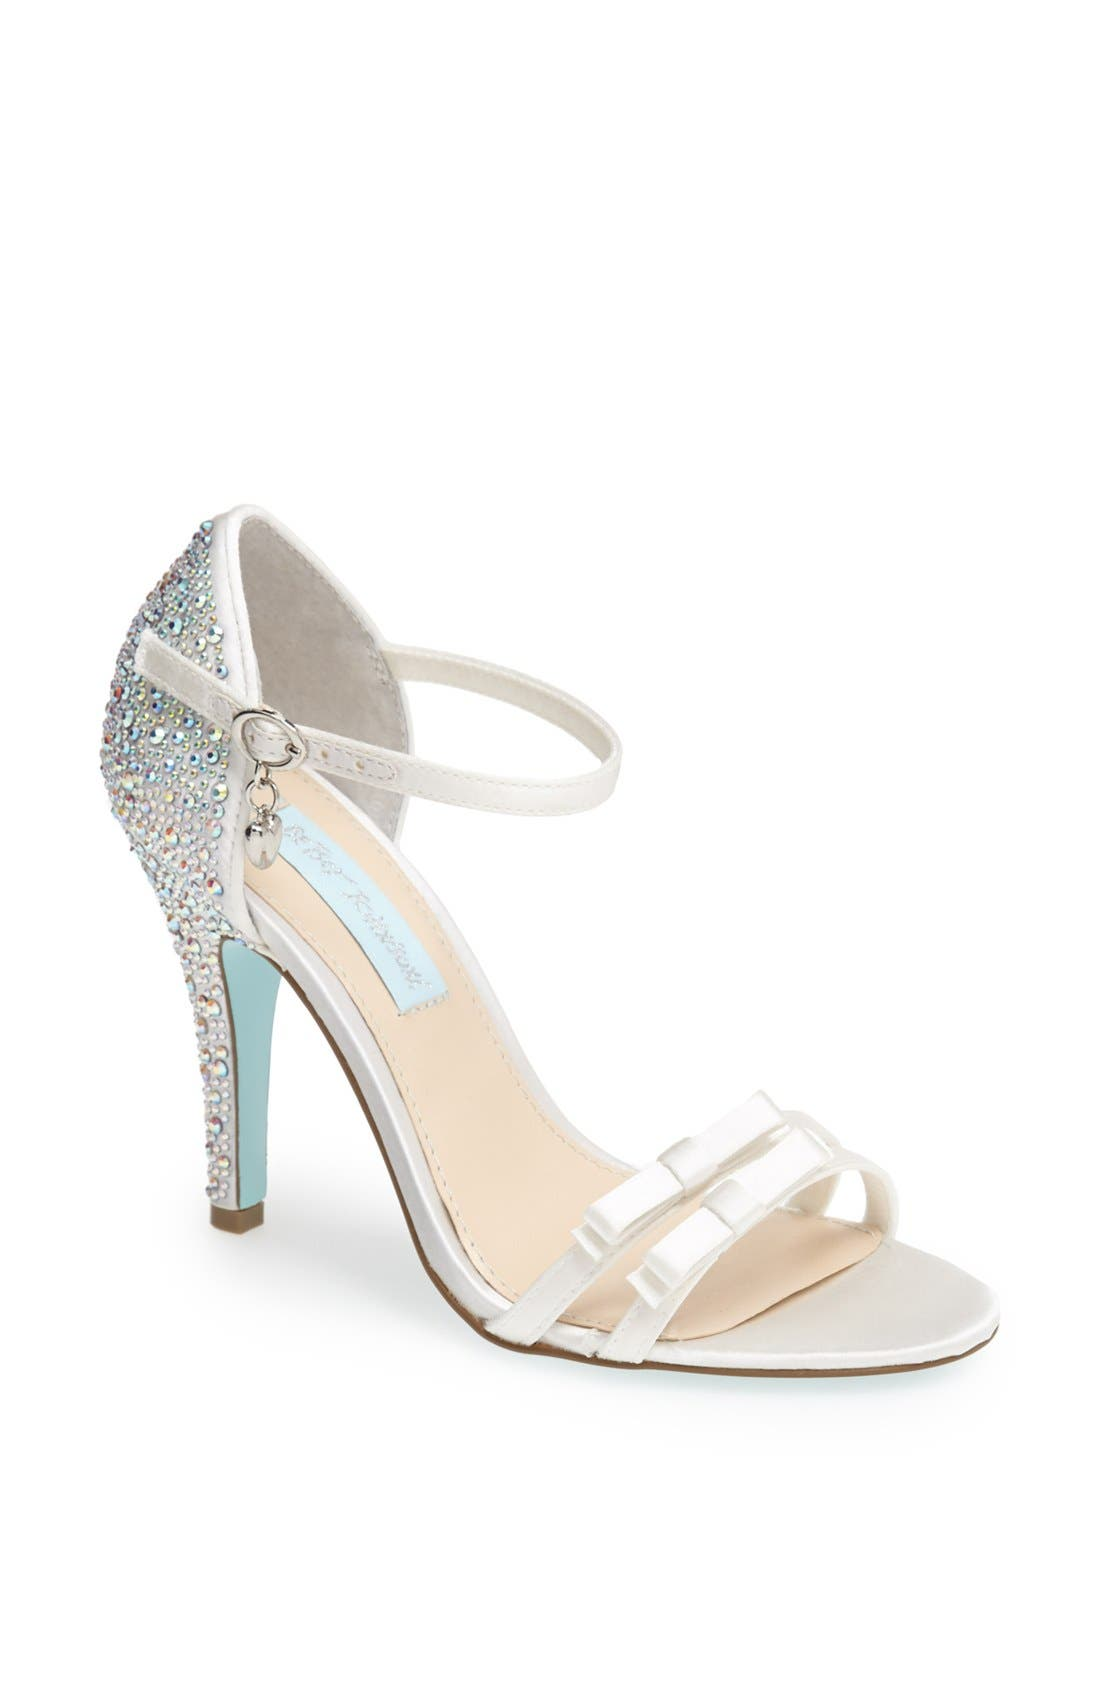 Main Image - Blue by Betsey Johnson 'Bow' Sandal